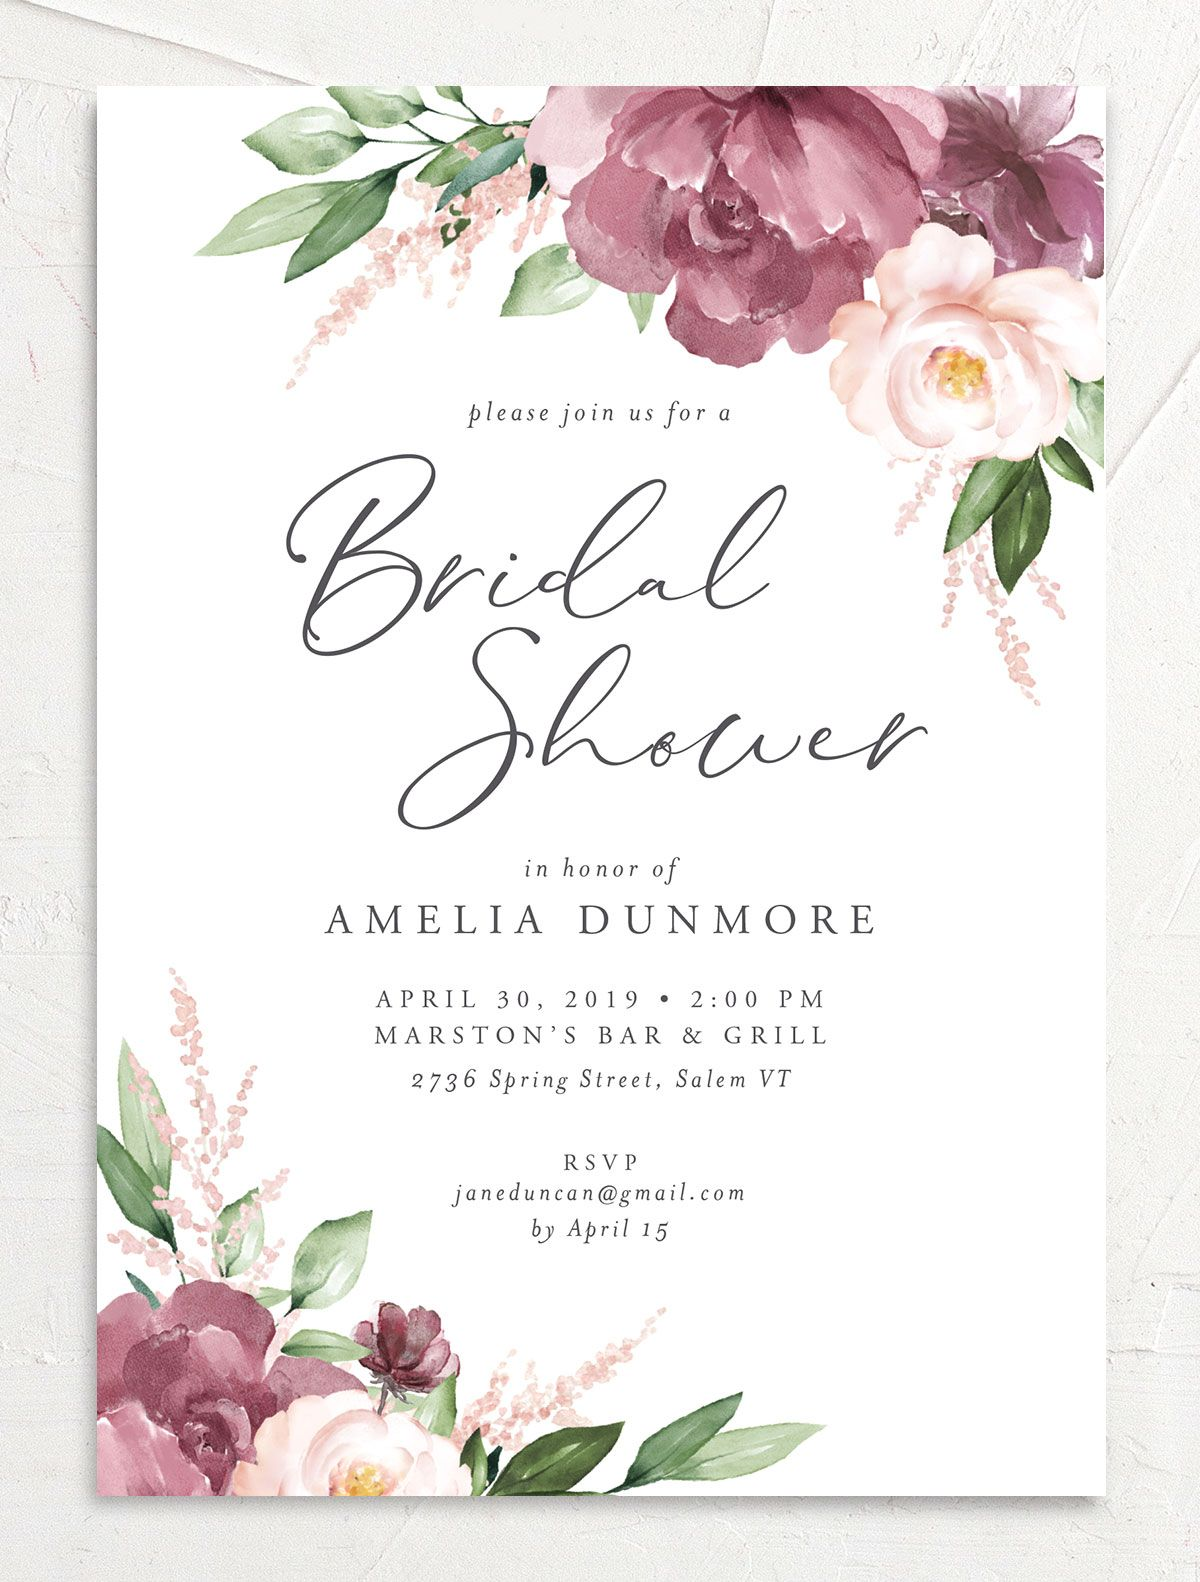 Beloved floral bridal shower invites in purple